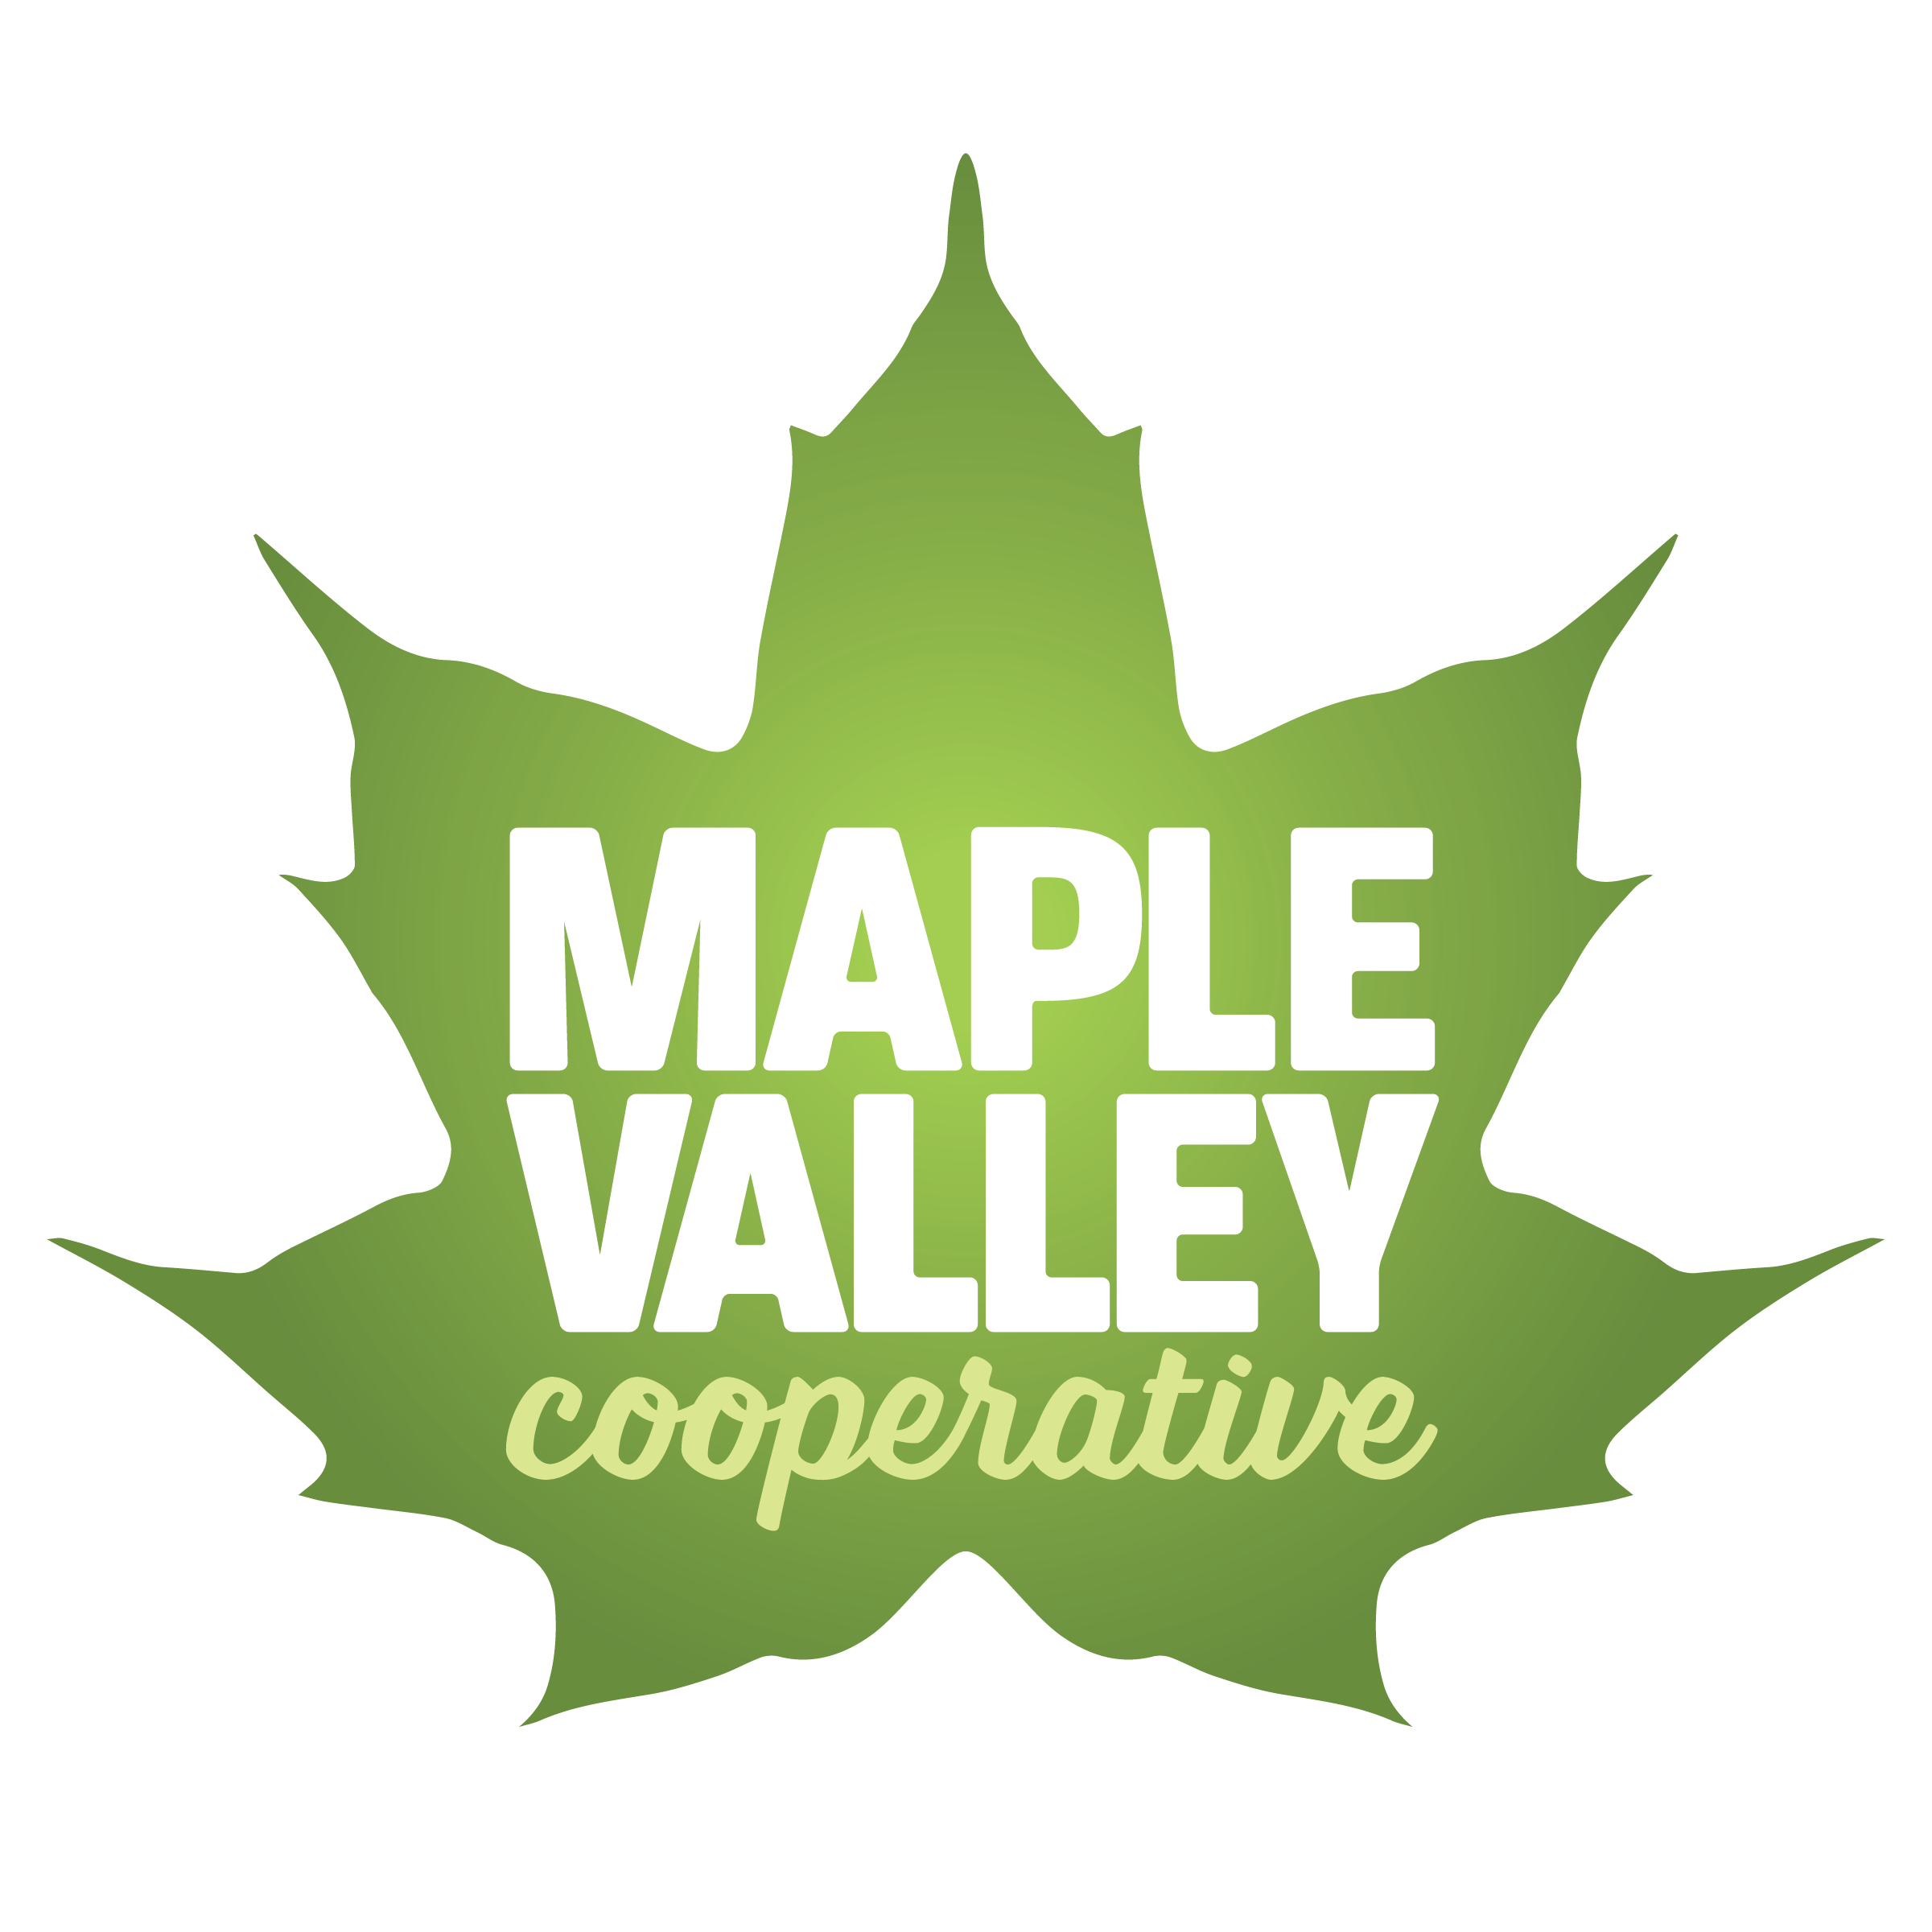 Maple Valley Cooperative logo of a maple leaf